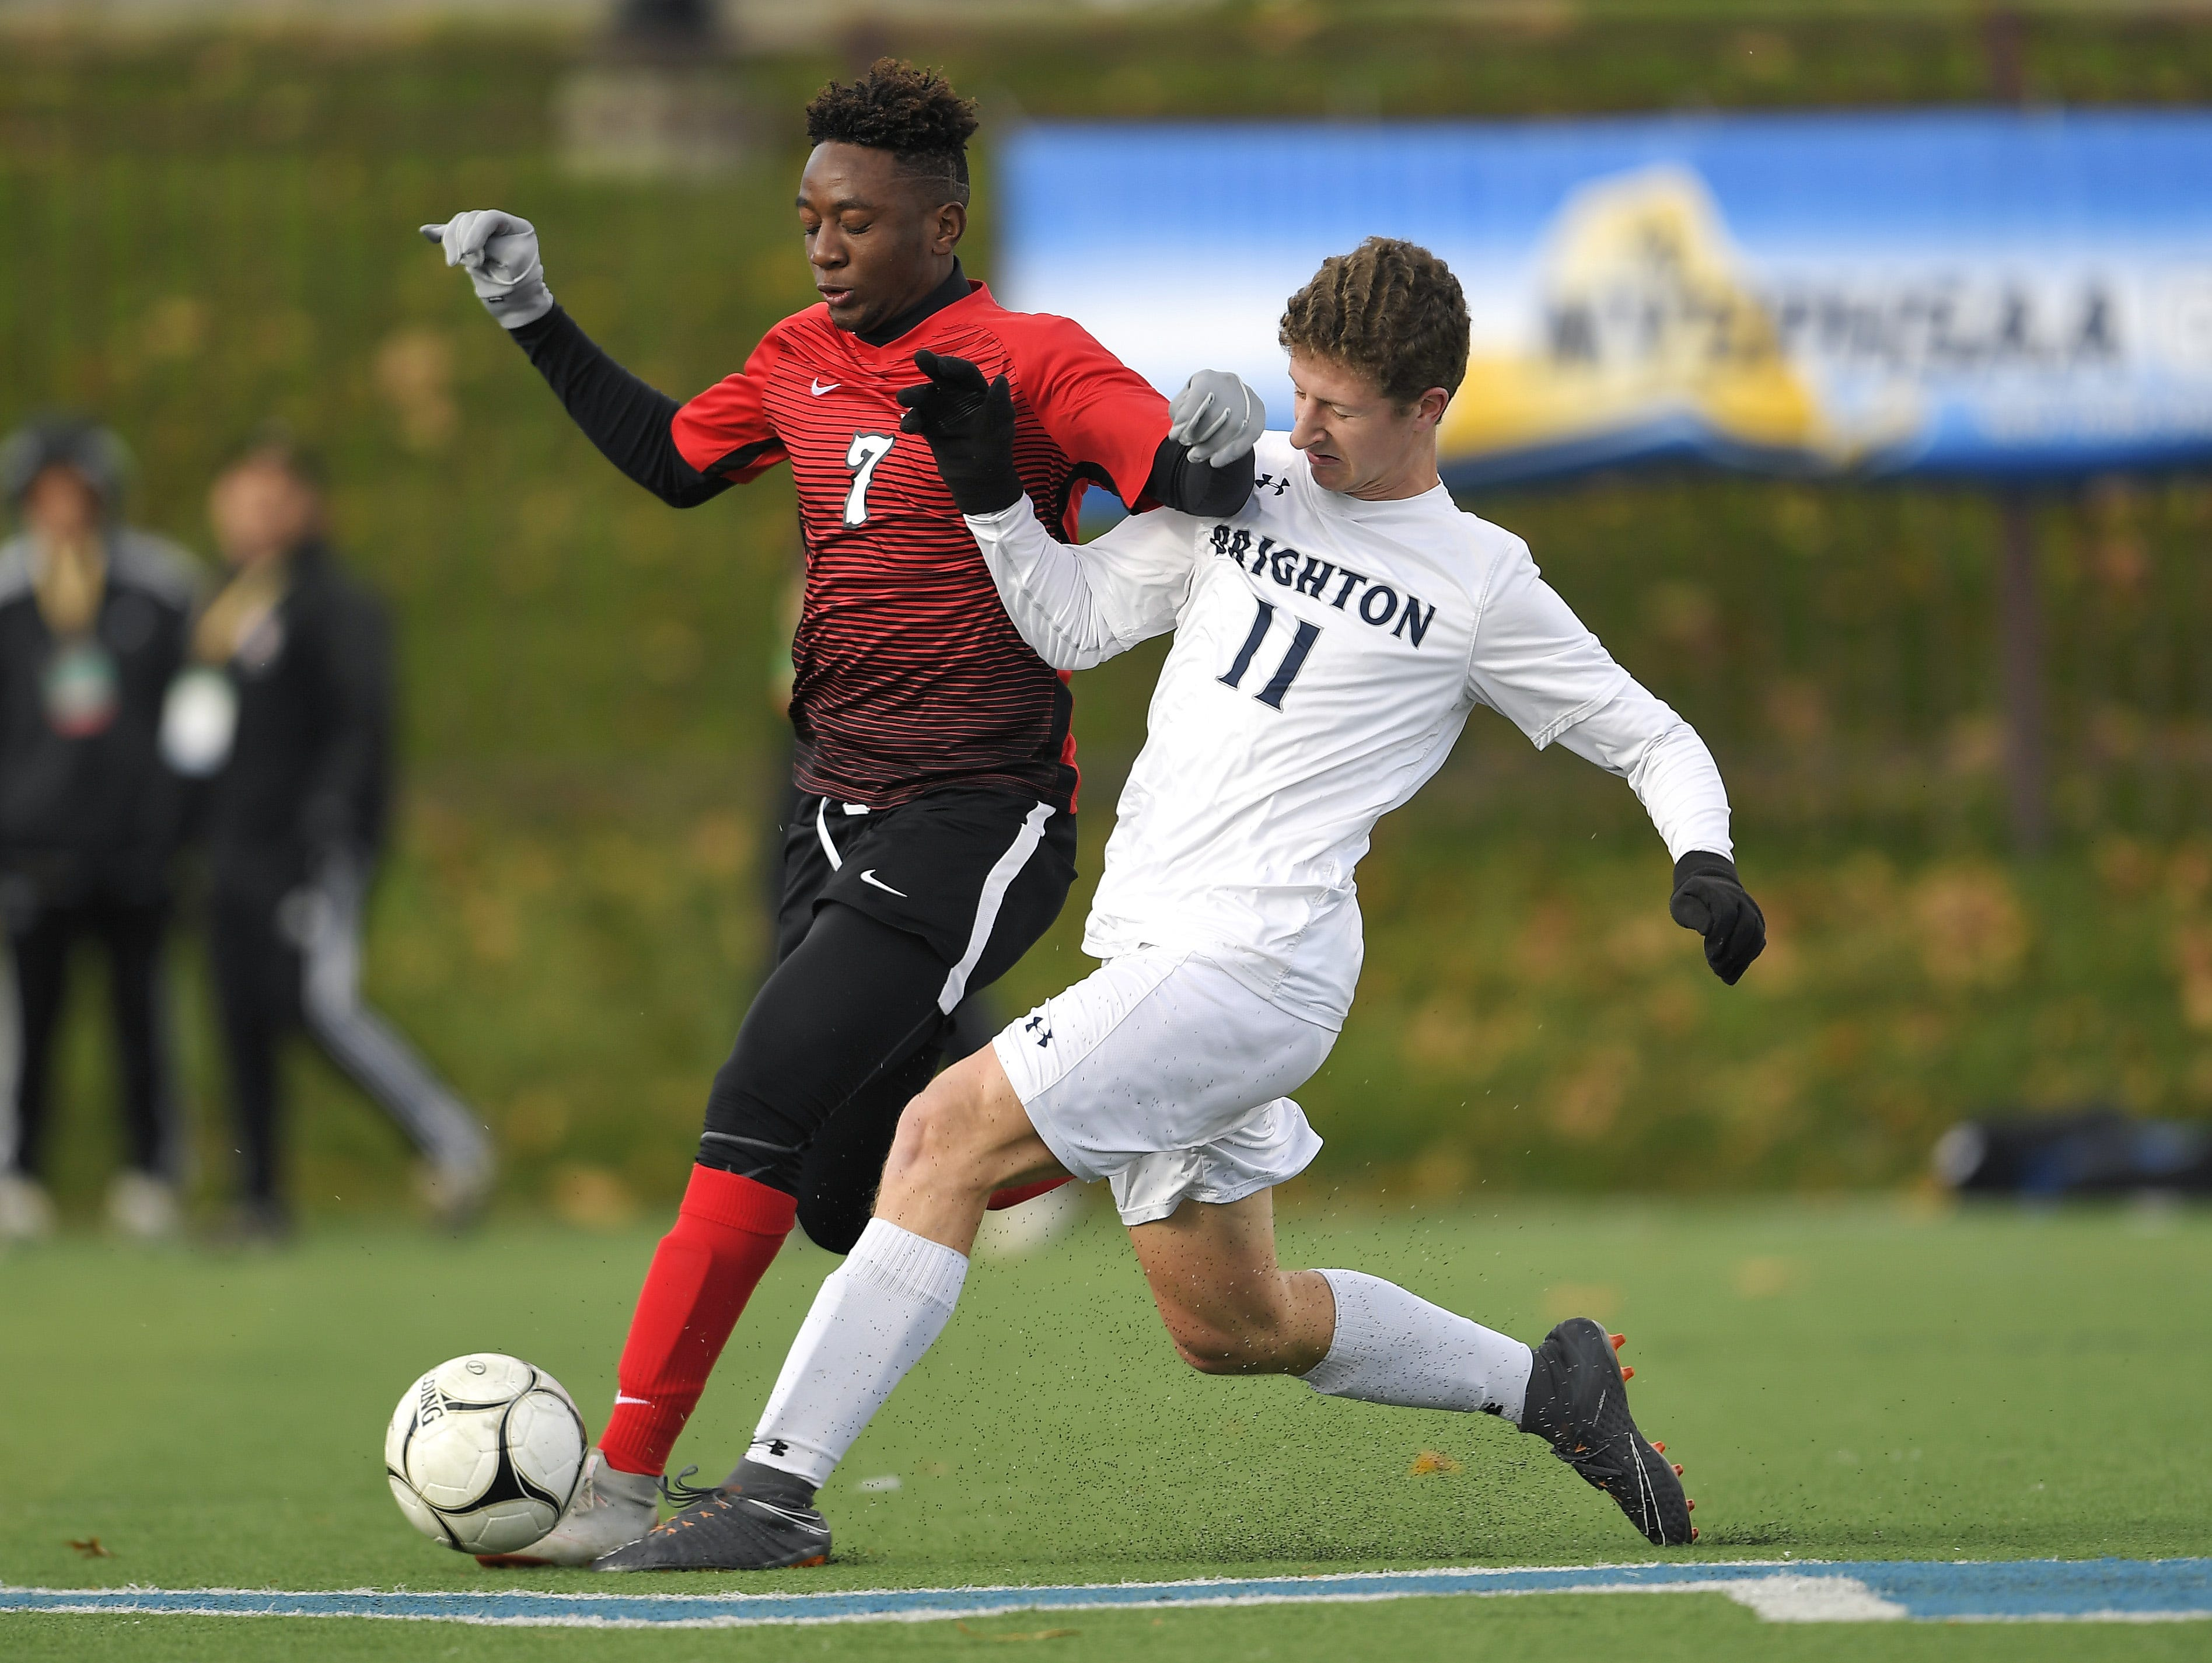 Brighton's Sam O'Connor, right, challenges for the ball against Amityville's Kymani Hines during a Class A semifinal at the NYSPHSAA Boys Soccer Championships in Newburgh, N.Y., Saturday, Nov. 10, 2018.